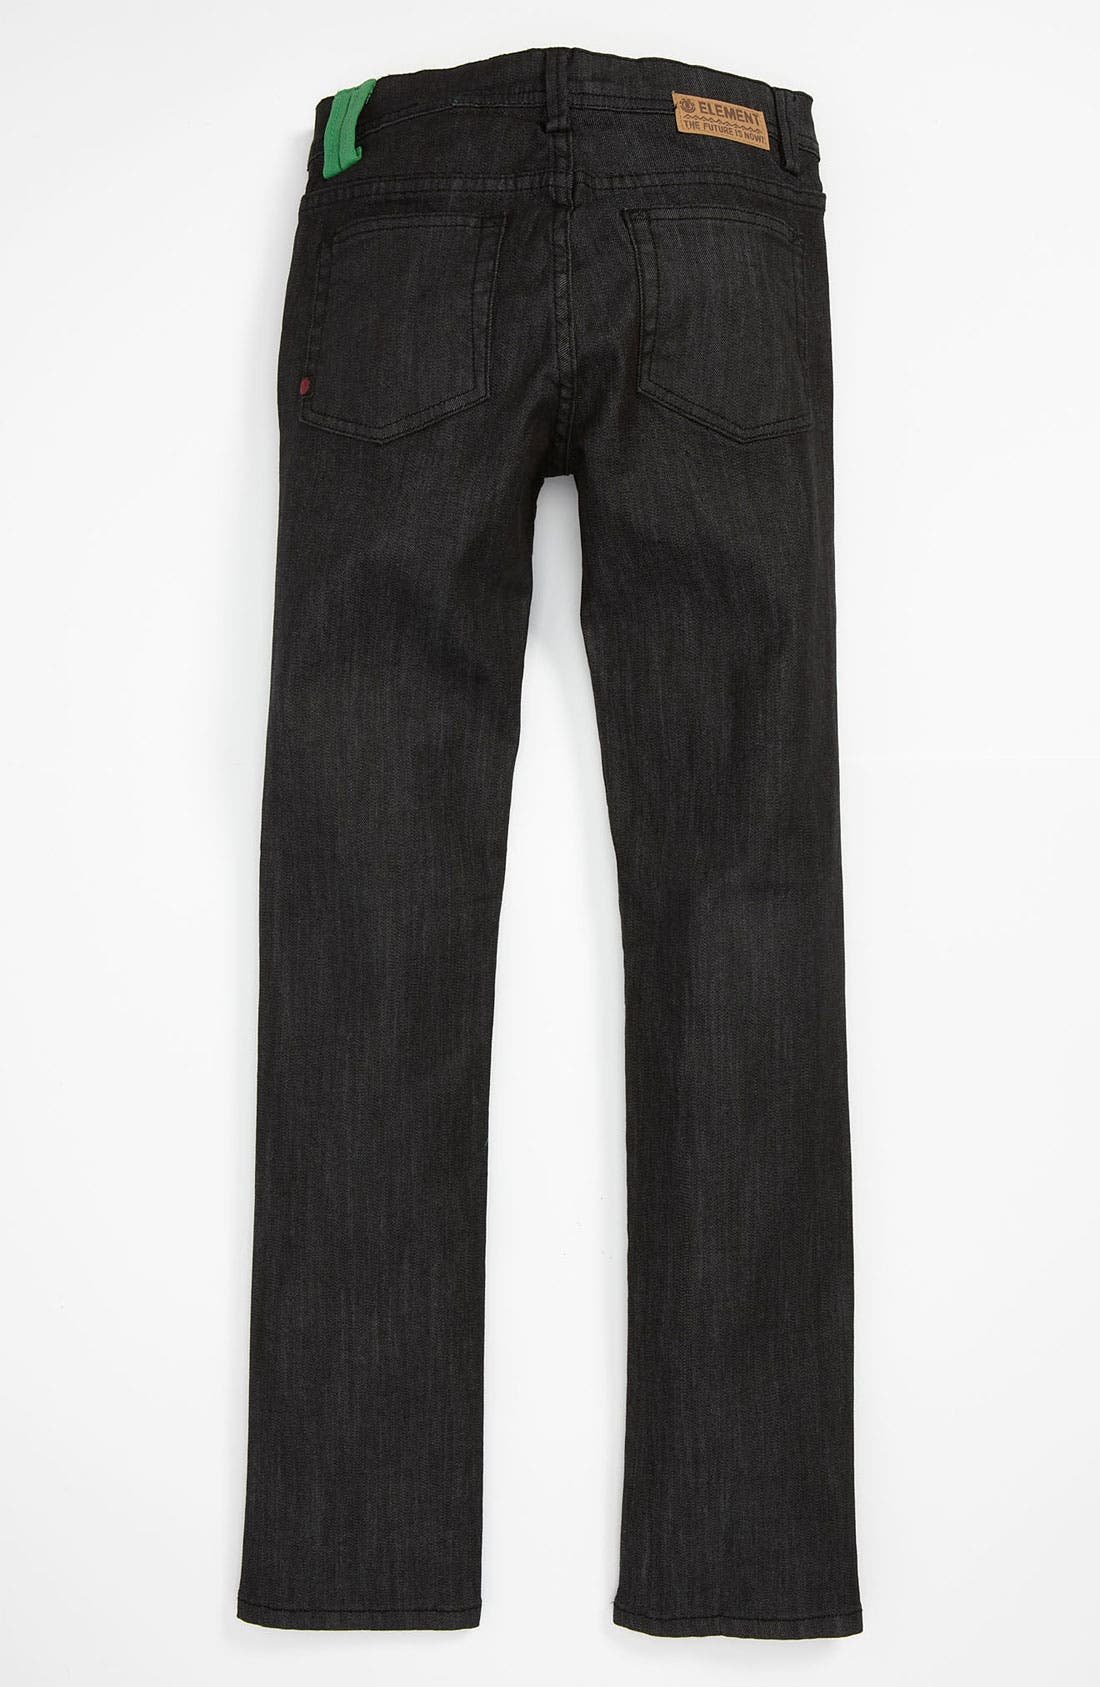 Alternate Image 1 Selected - Element 'Smith' Skinny Jeans (Big Boys)